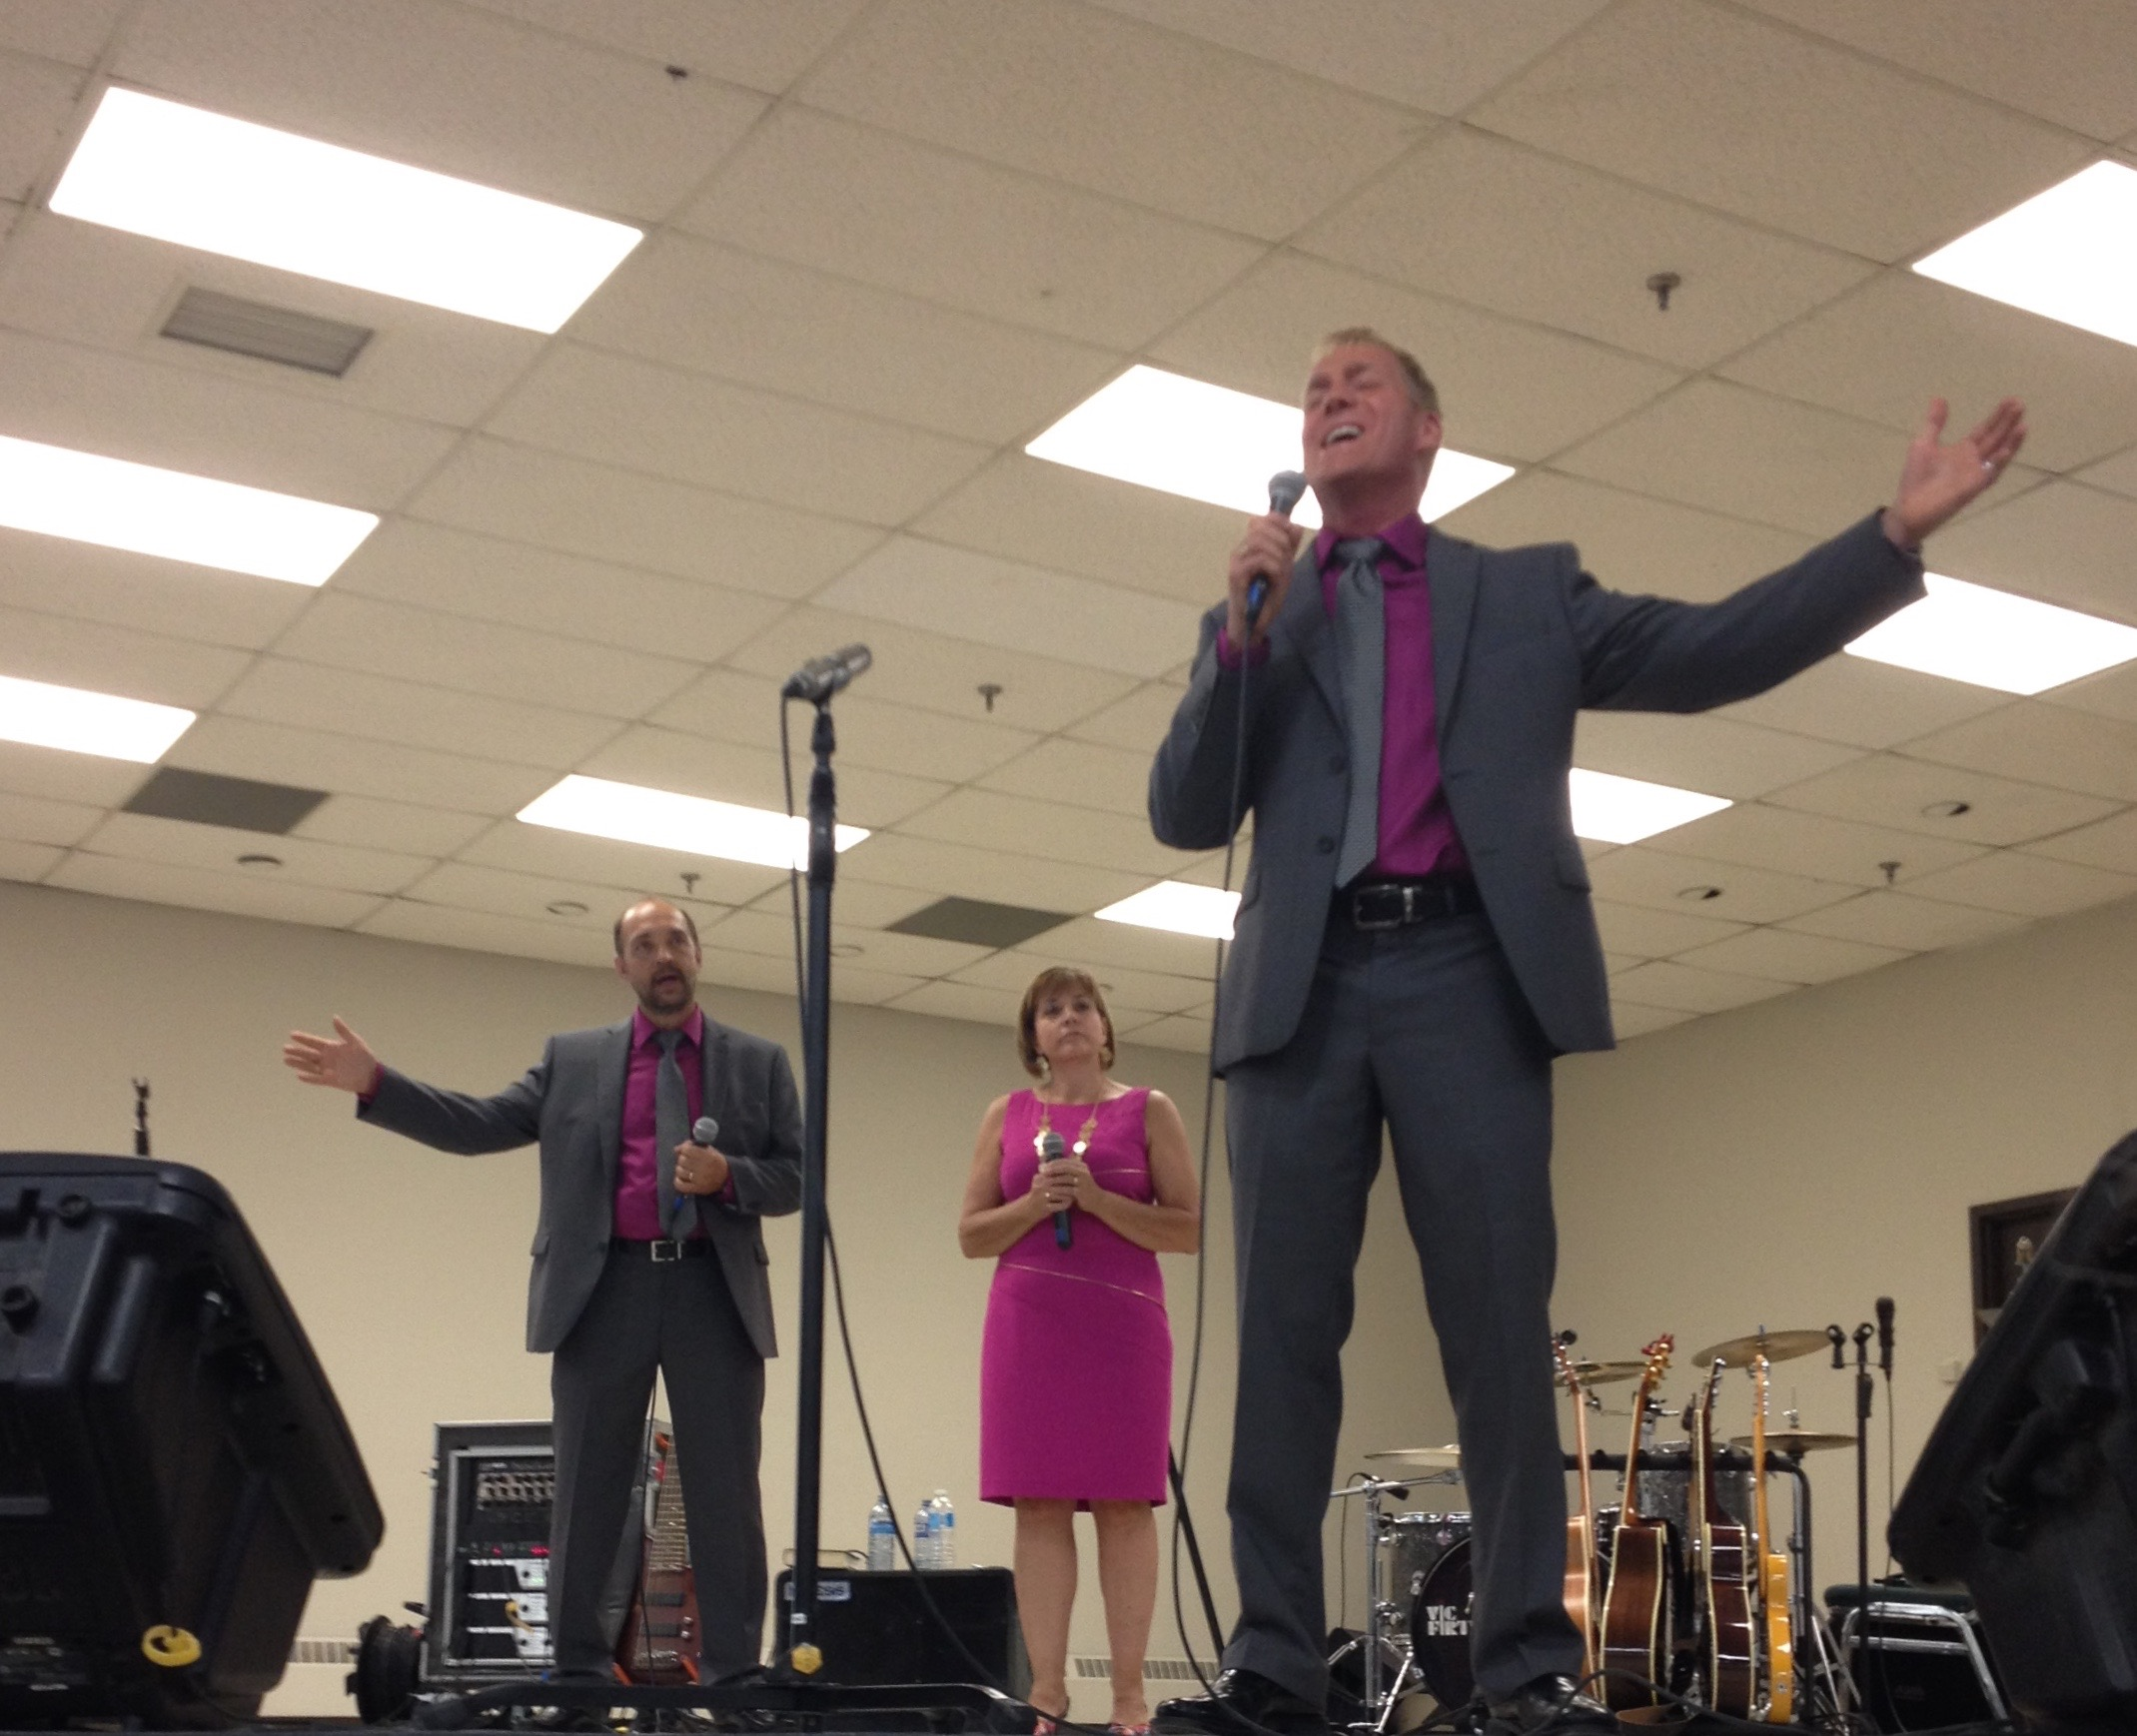 """Brent singing the 2nd verse to """"The Saviour Is Waiting"""" while Dianne and Dale watch.  Great crowd again this year at the Canadian showcase."""